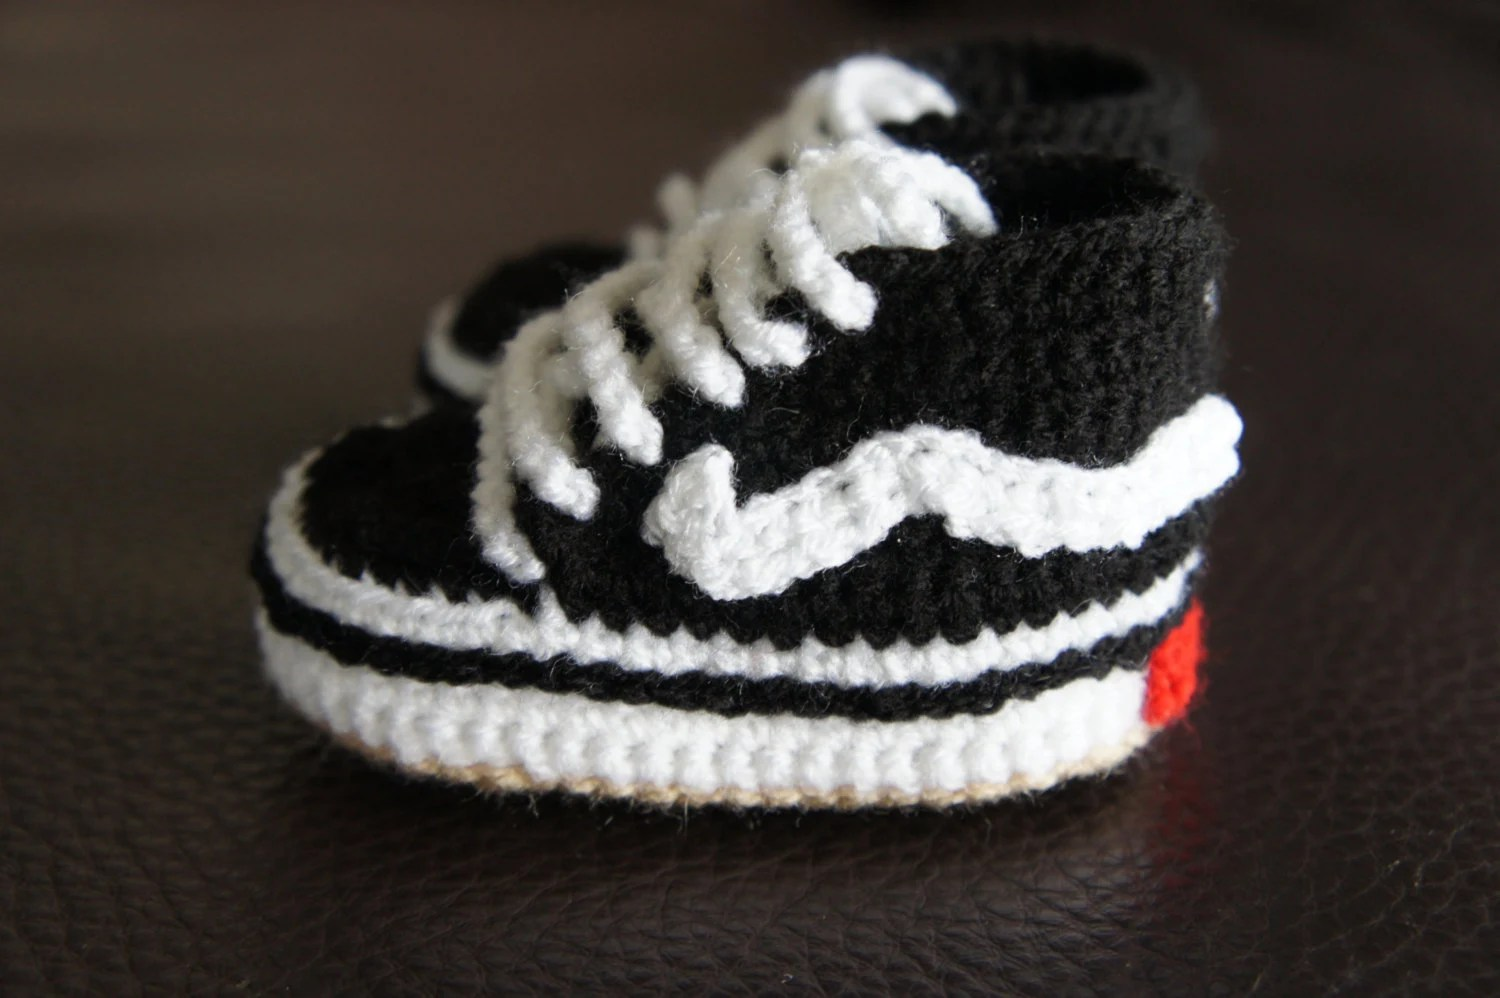 Newborn Shoes Vans Cute Crochet Vans Baby Shoes Crochet Newborn Baby Booties